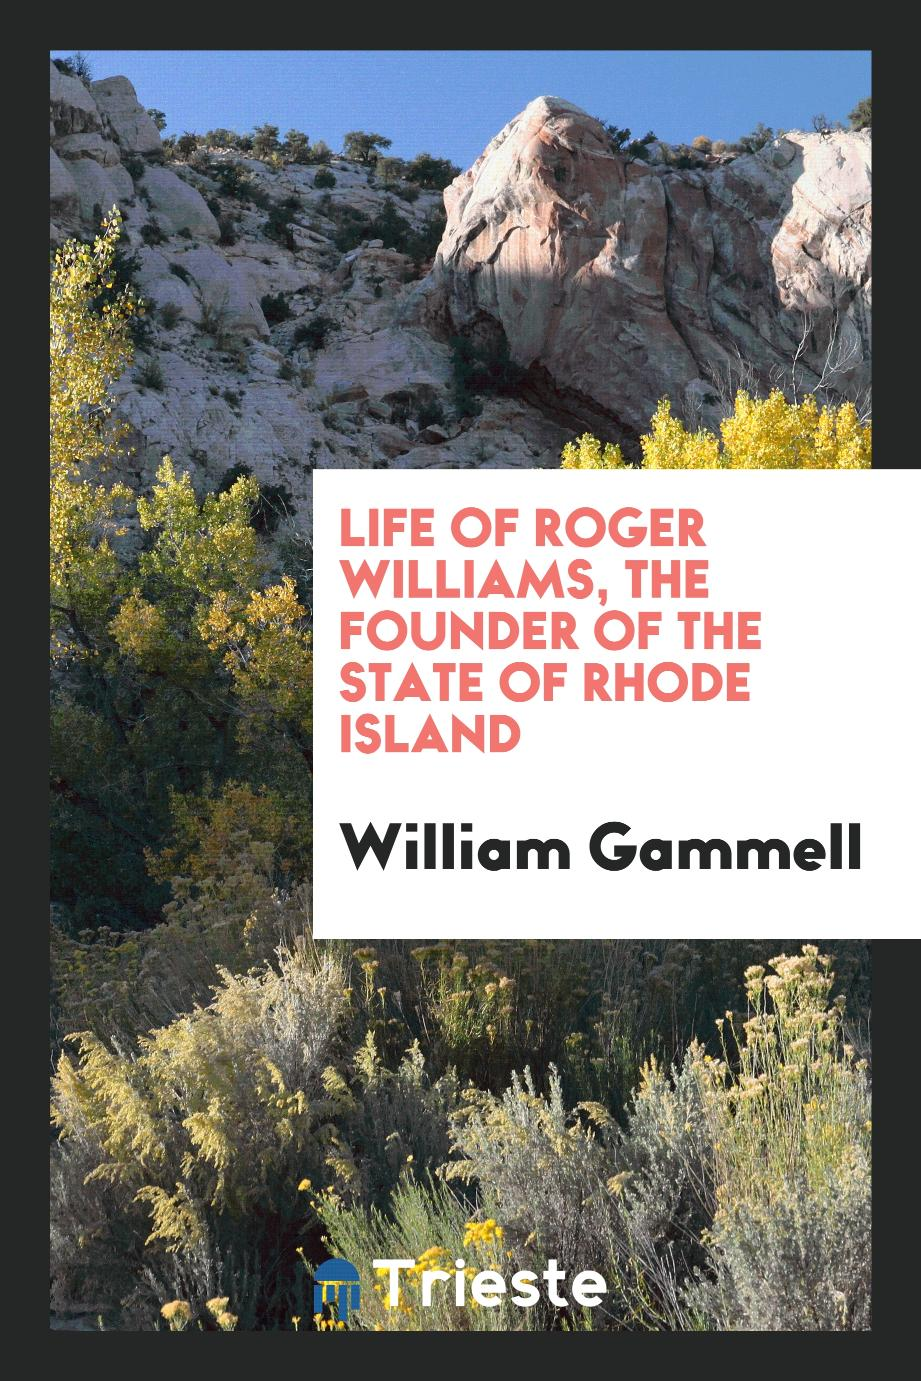 Life of Roger Williams, the Founder of the State of Rhode Island